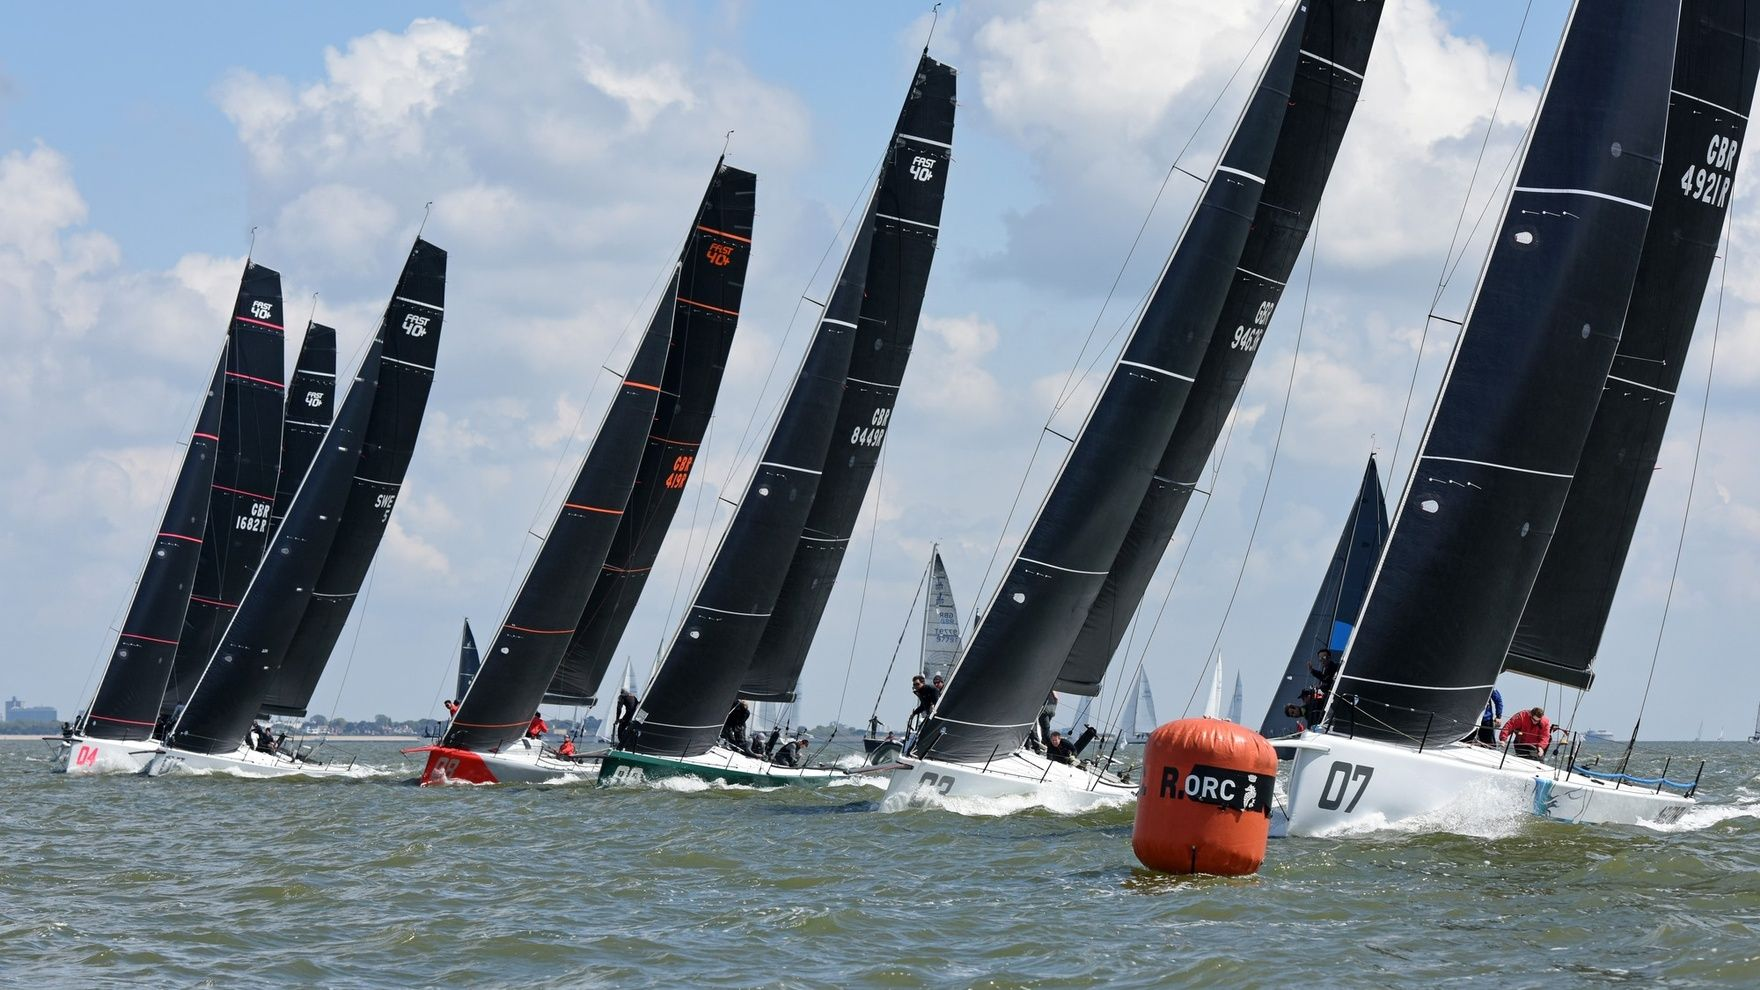 Vice Admiral's Cup 2021